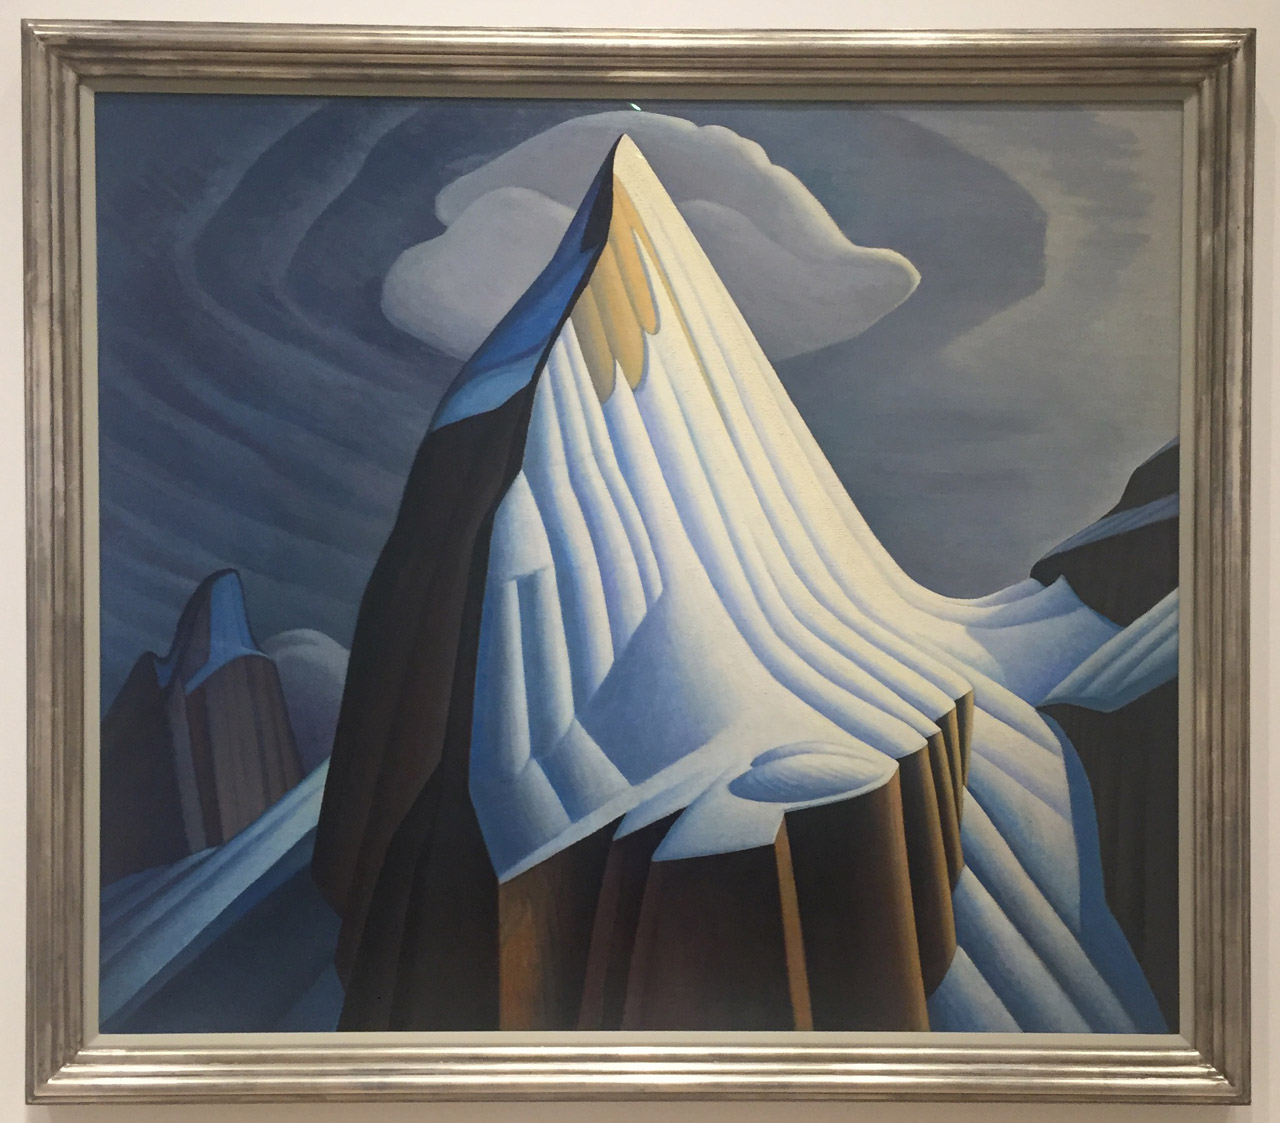 """Lawren Harris, """"Mt. Lefroy"""" (1930), oil on canvas, 52.5 x 60.4 in (133.5 x 153.5 cm), McMichael Canadian Art Collection (all photos by the author for Hyperallergic)"""